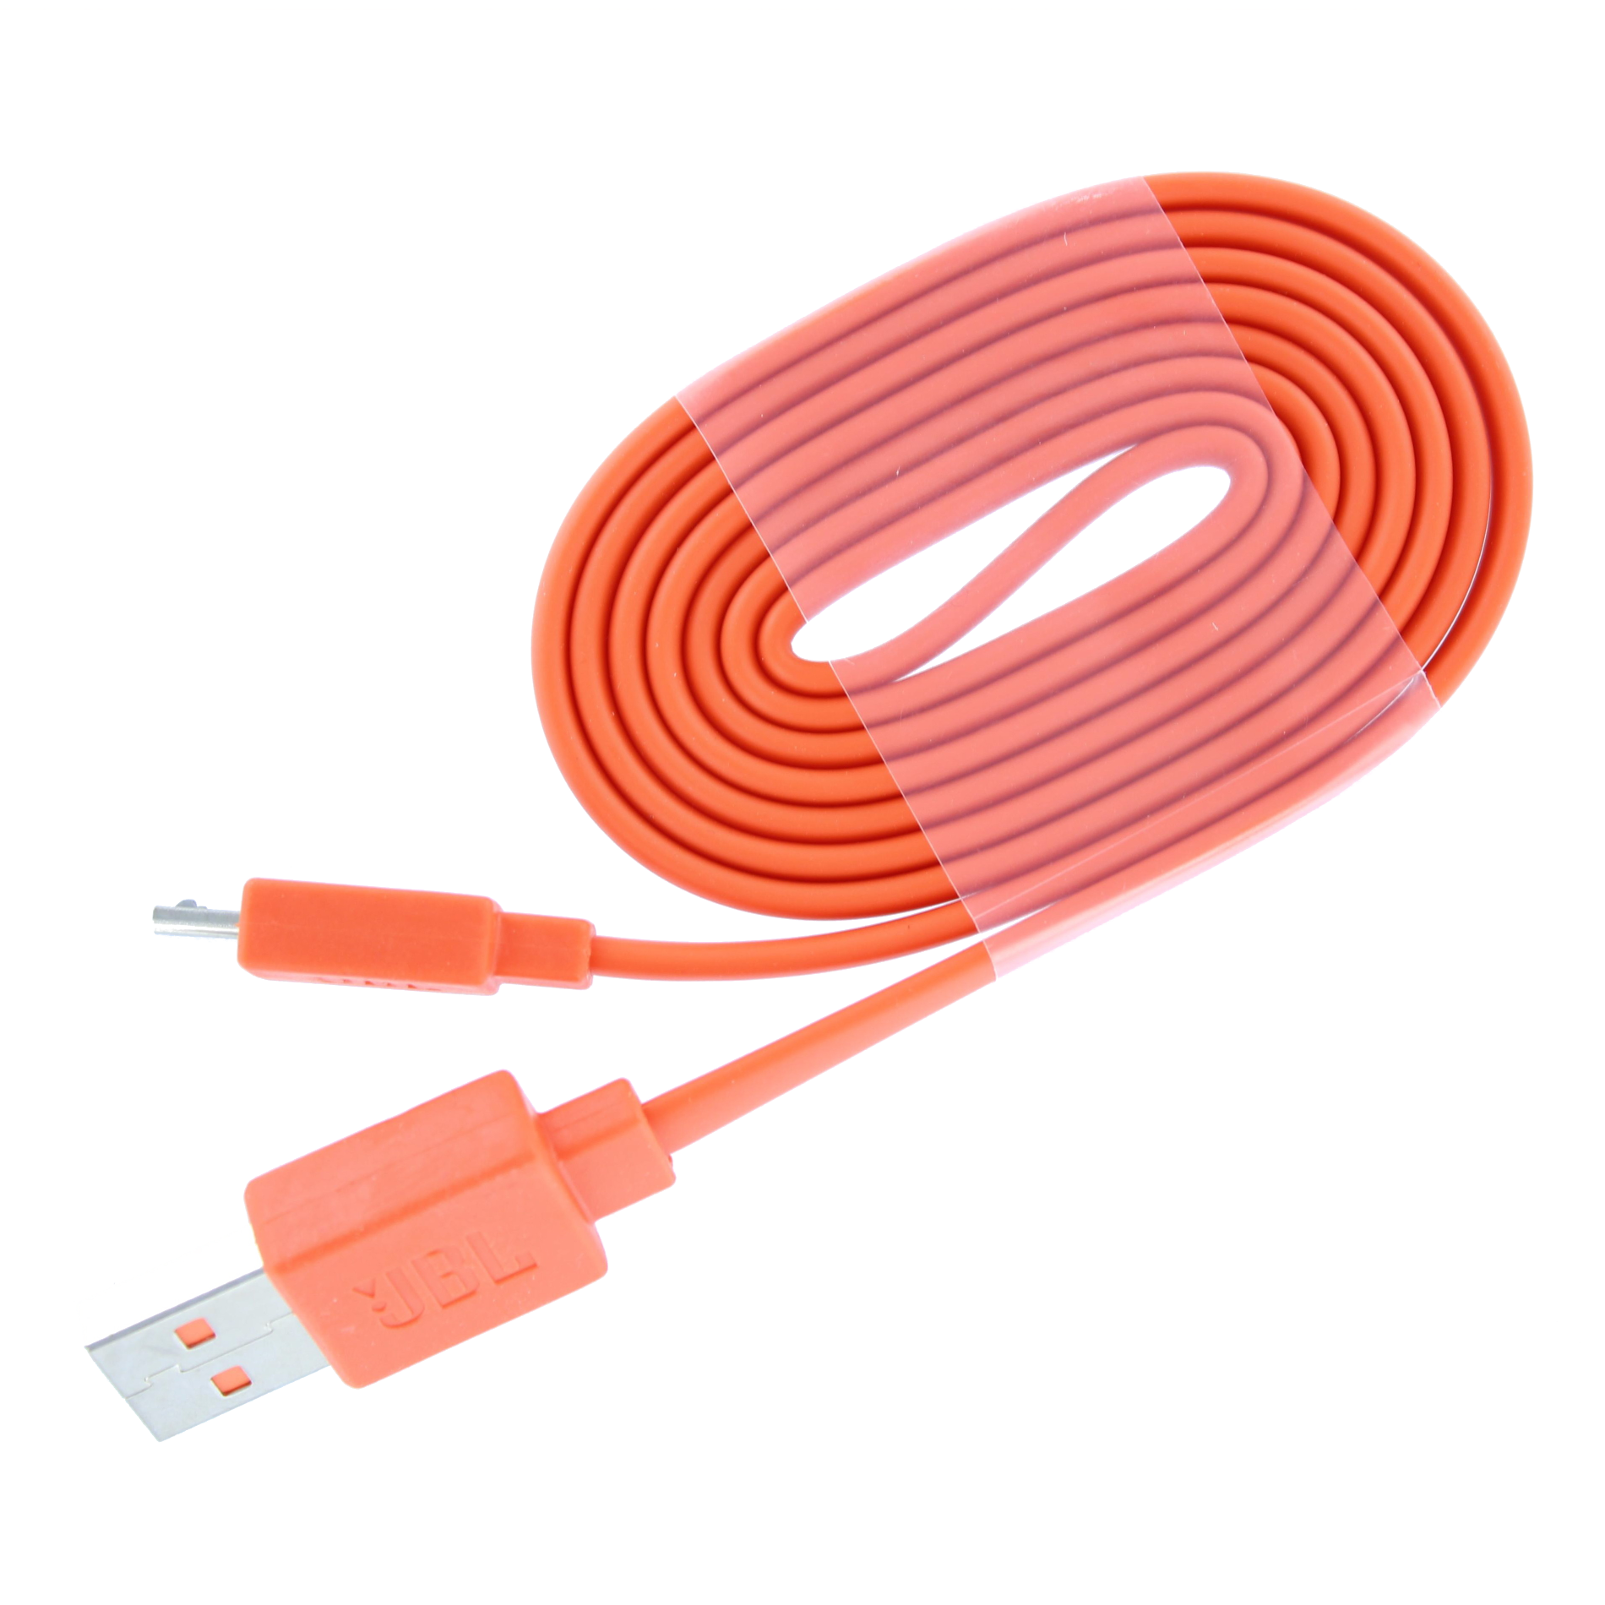 JBL USB Type-B charging cable for Flip 2/3/4, Charge 2/3, Pulse 3 - Orange - USB charging cable - Hero